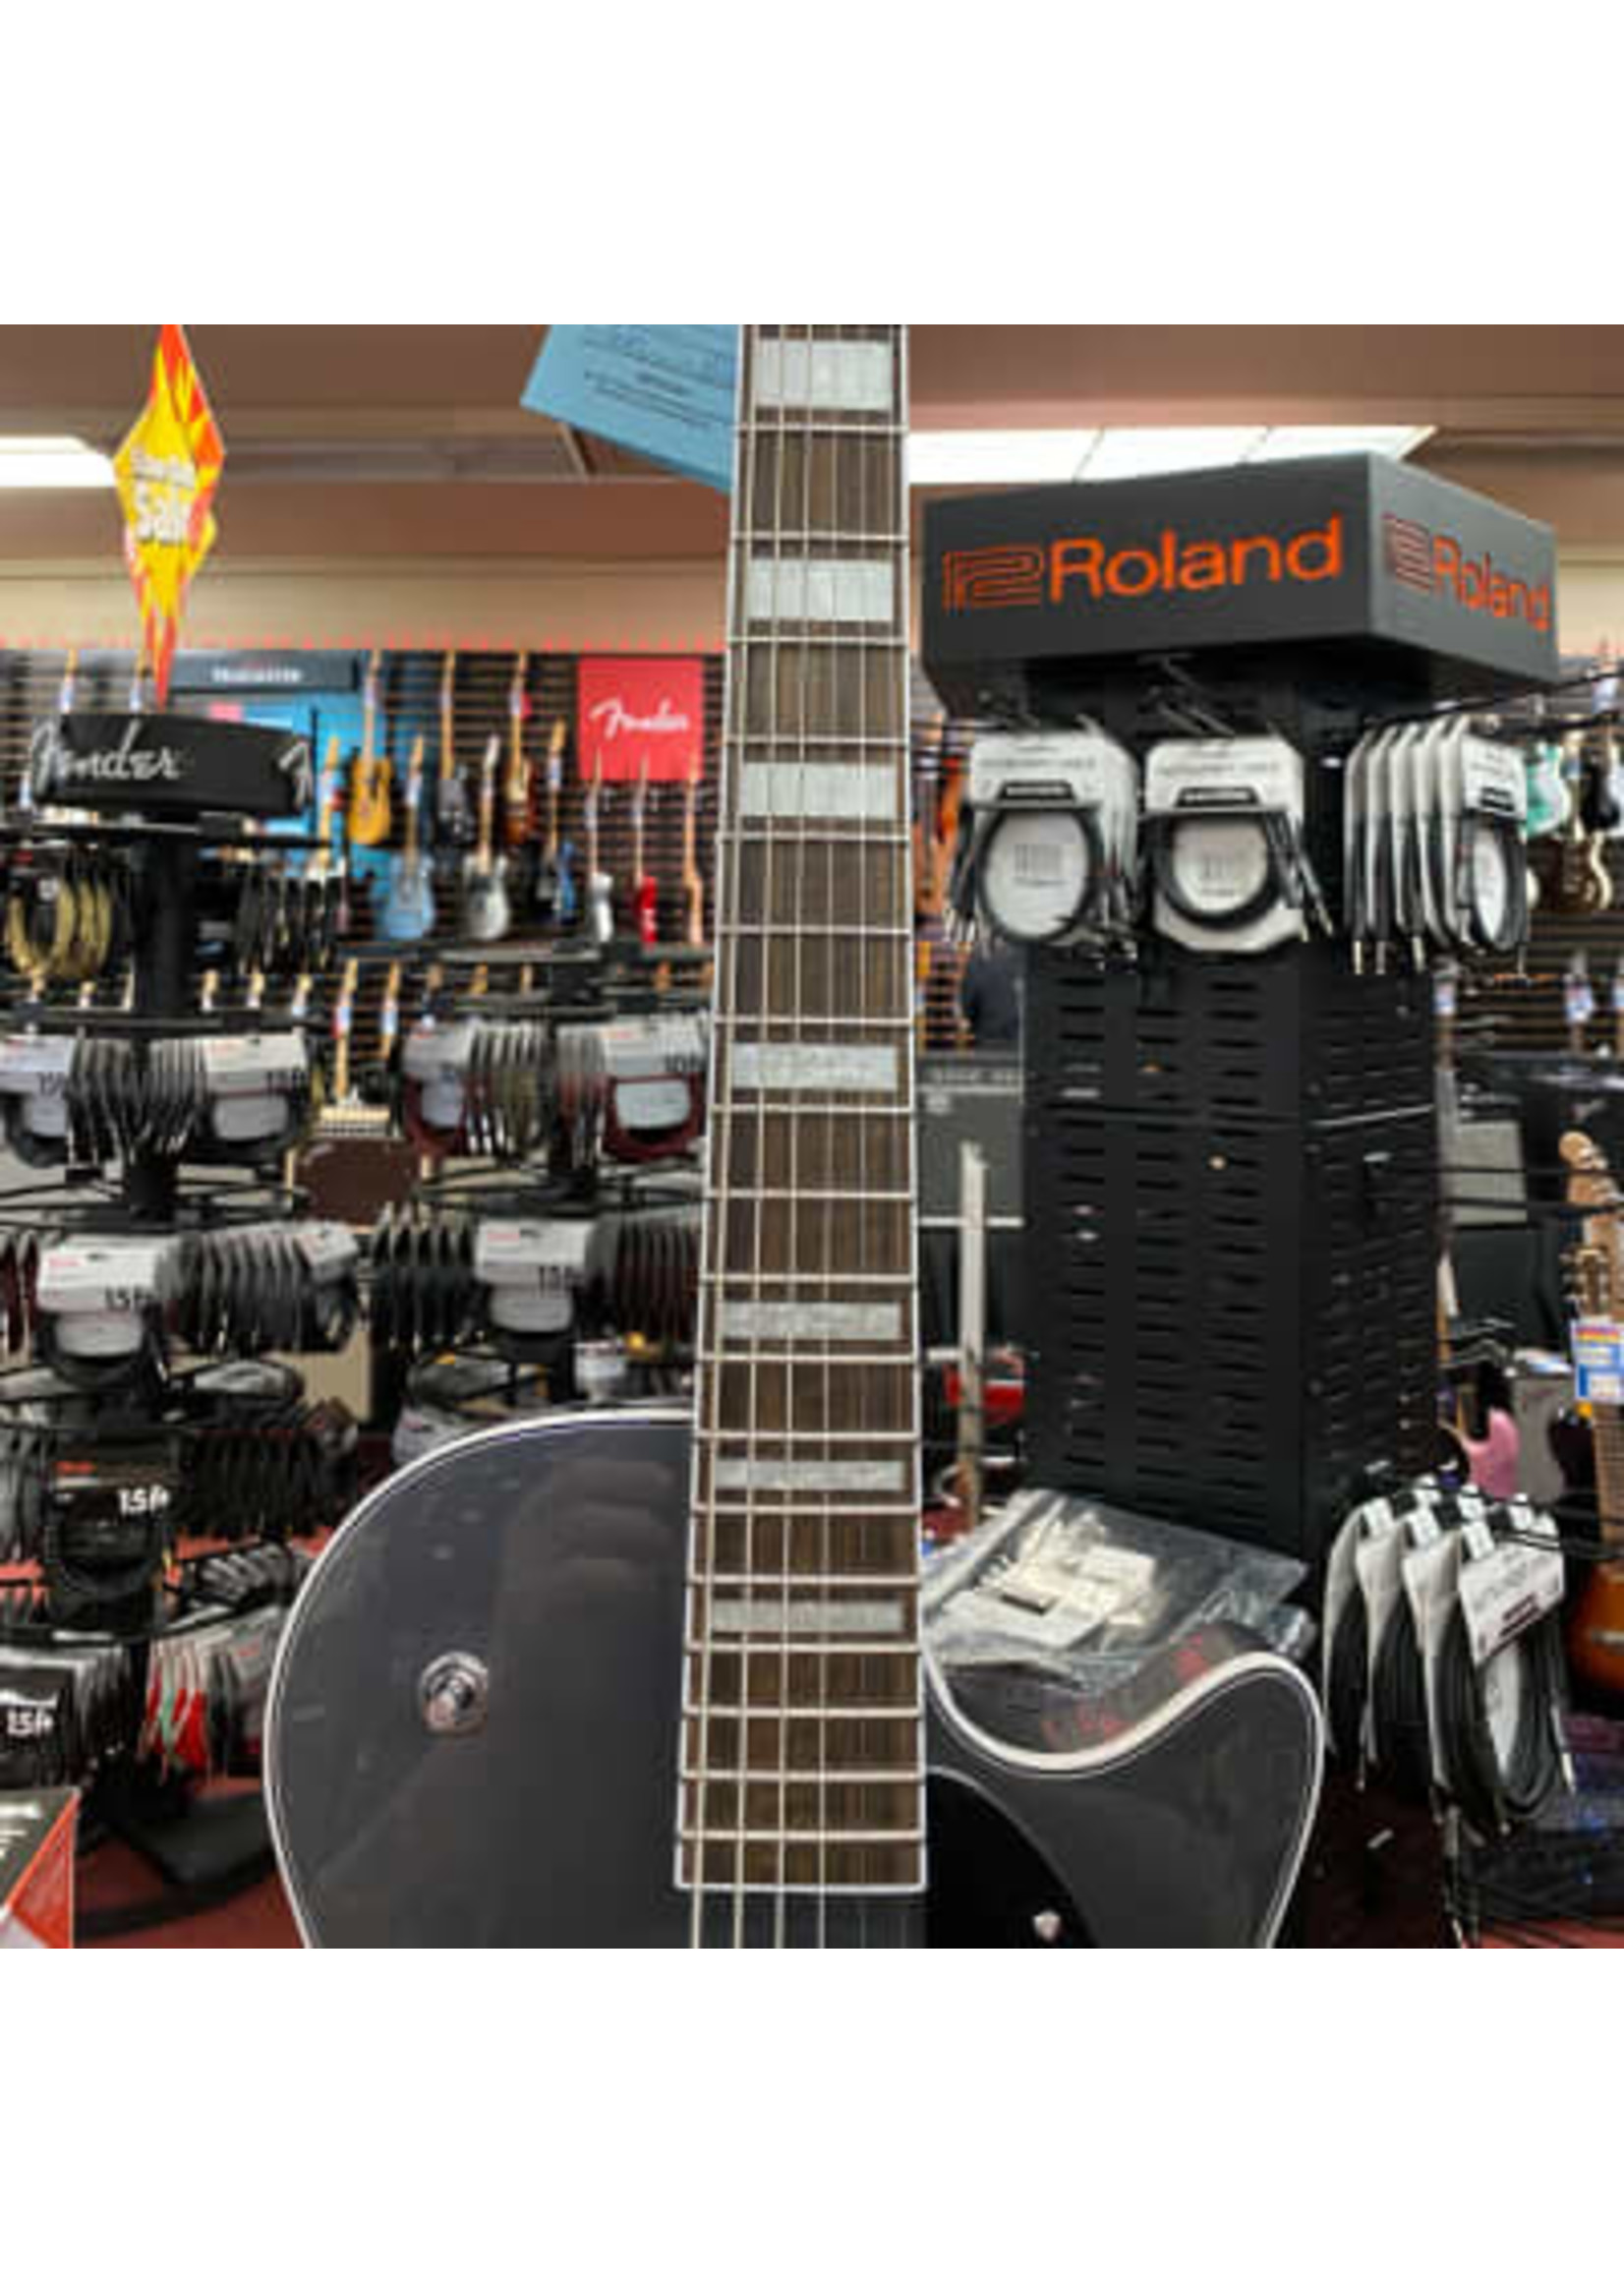 Gretsch Gretsch G5260 Electromatic® Jet™ Baritone with V-Stoptail, Laurel Fingerboard, London Grey